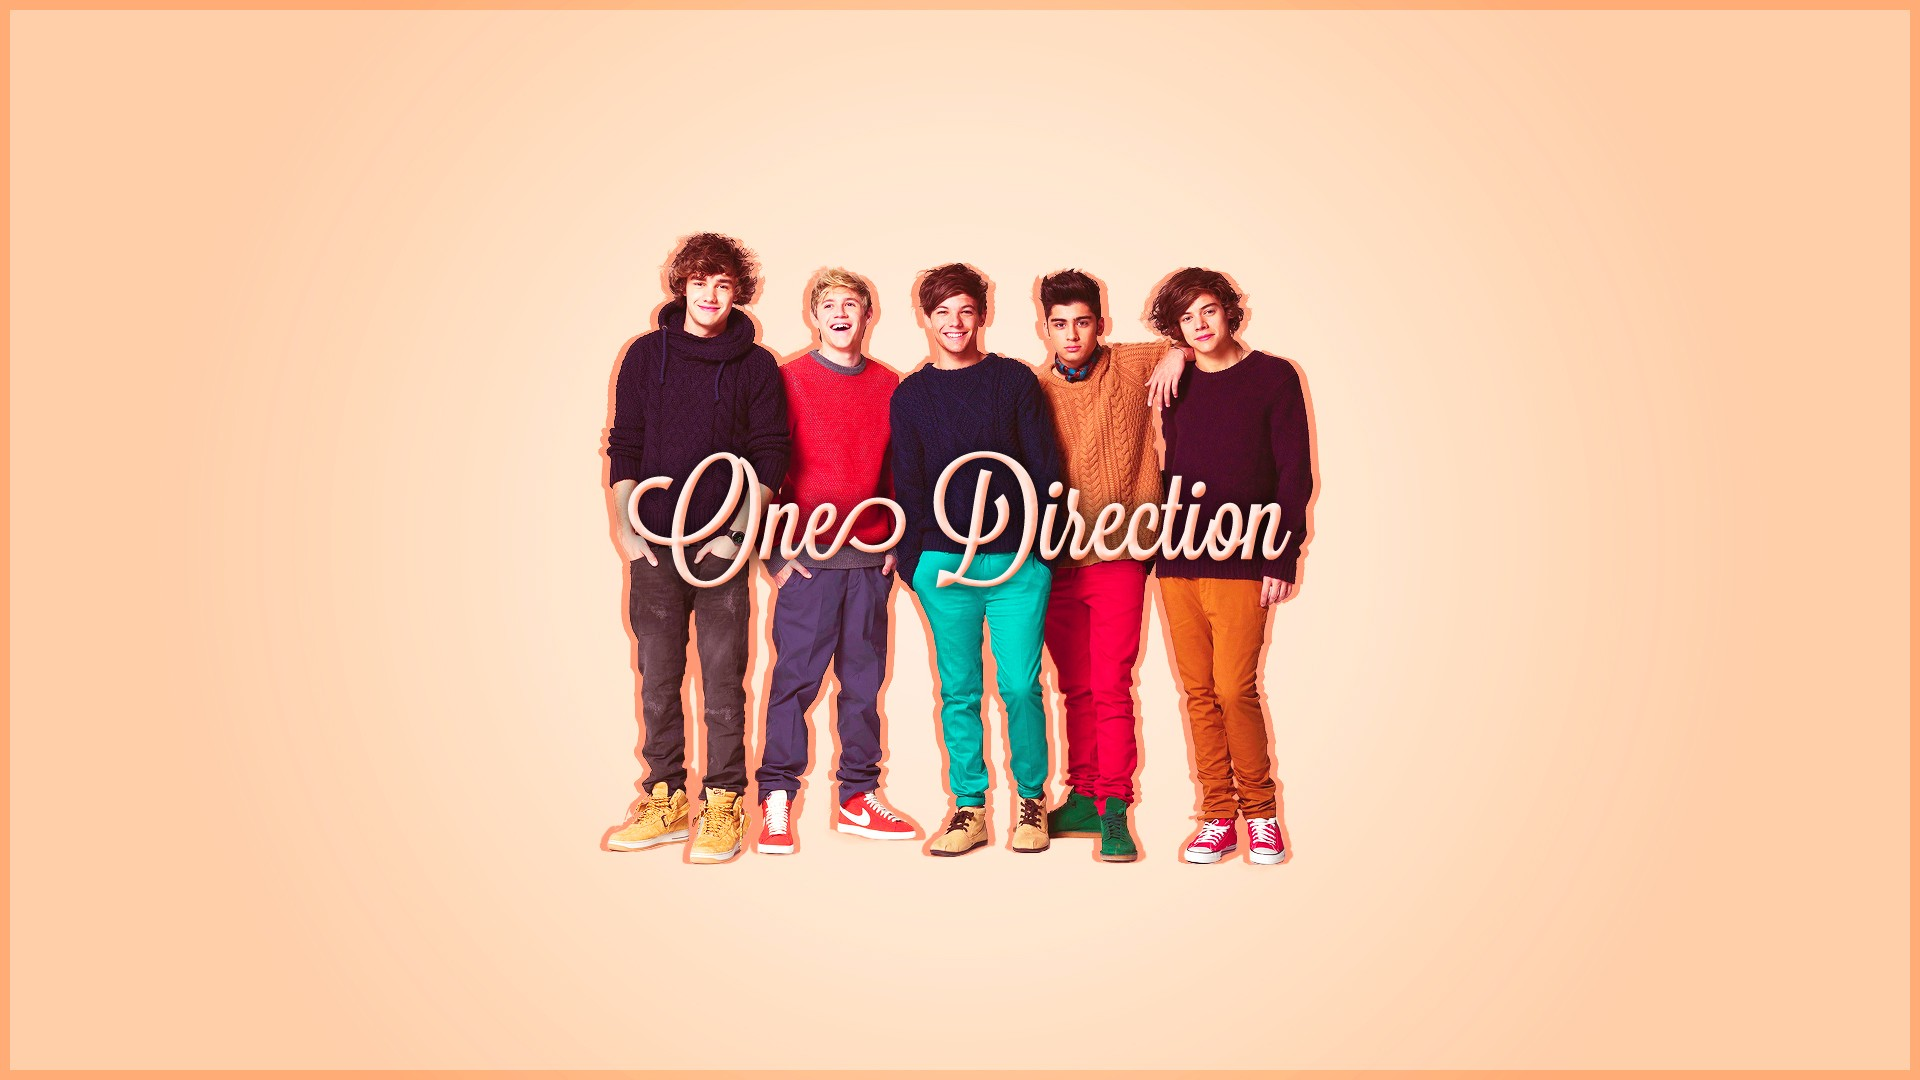 One Direction Widescreen 2013 Hd Wallpapers Celebrities - One Direction 2012 Photoshoot - HD Wallpaper